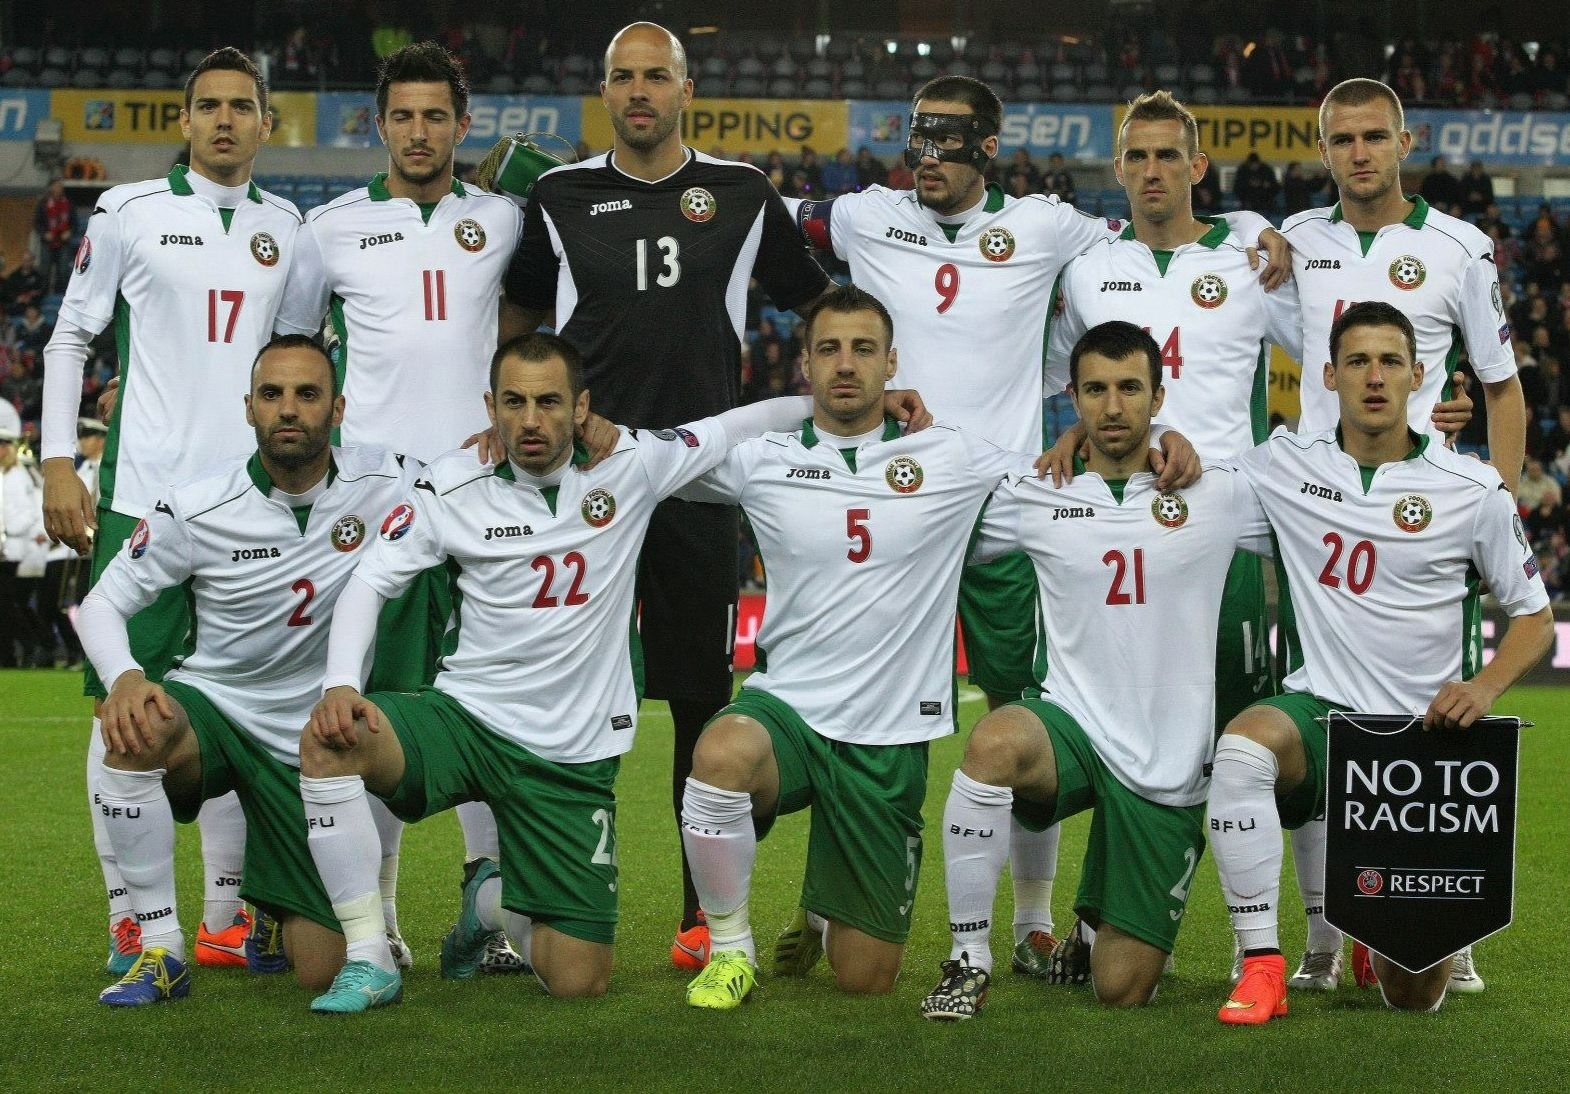 Bulgaria-14-15-Joma-home-kit-white-green-white-line-up.jpg